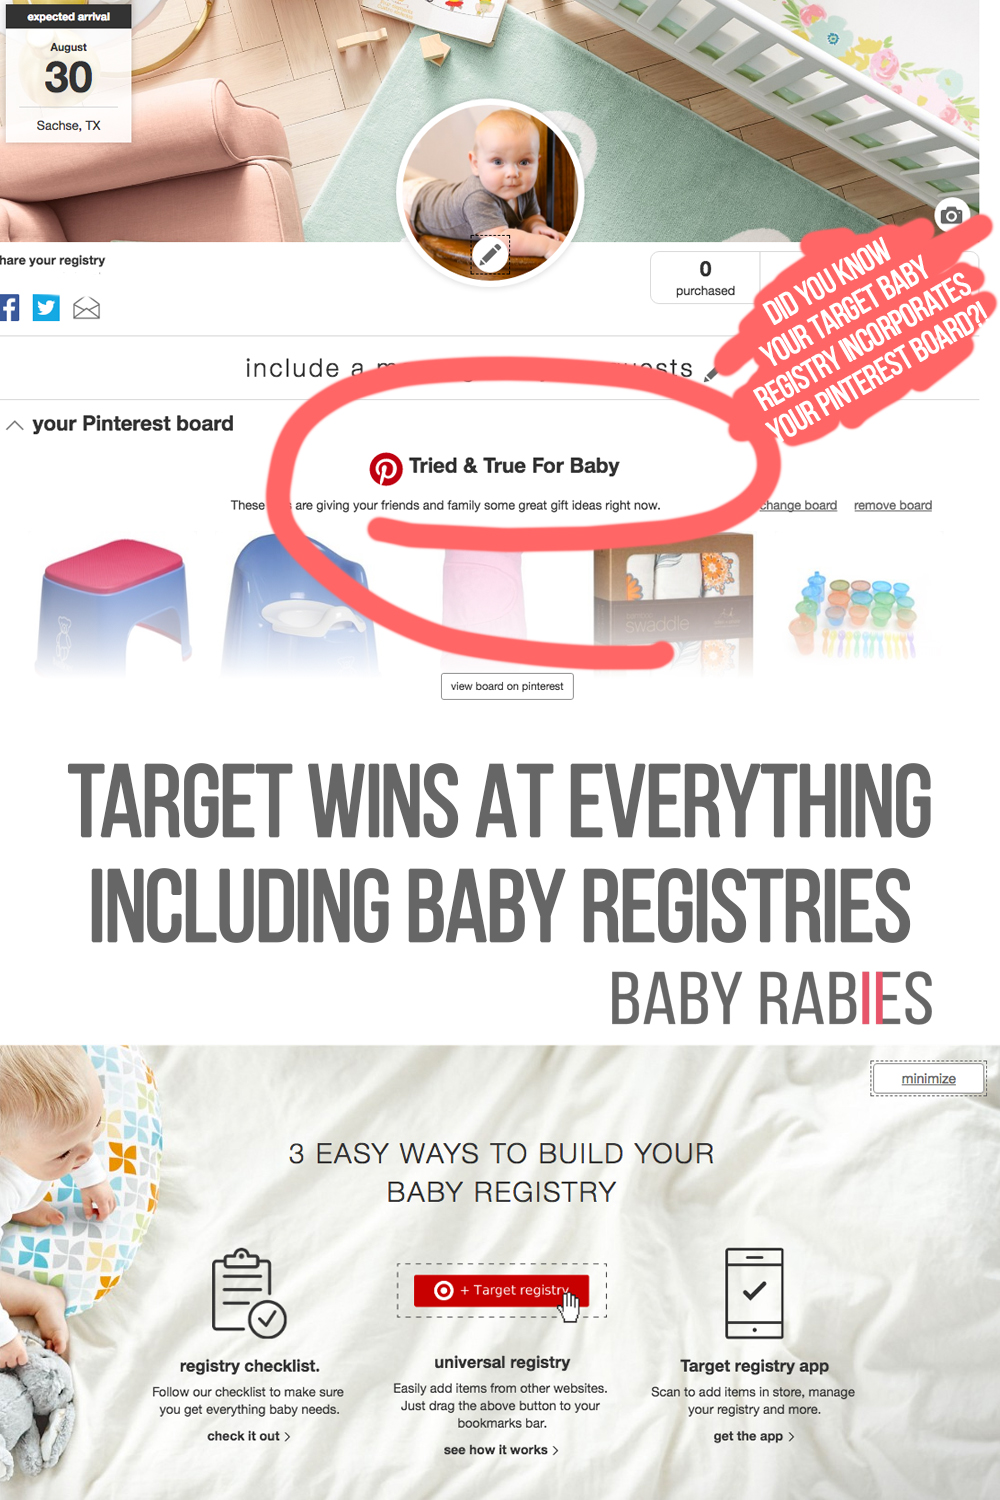 Target Wins At Everything, Including Baby Registries